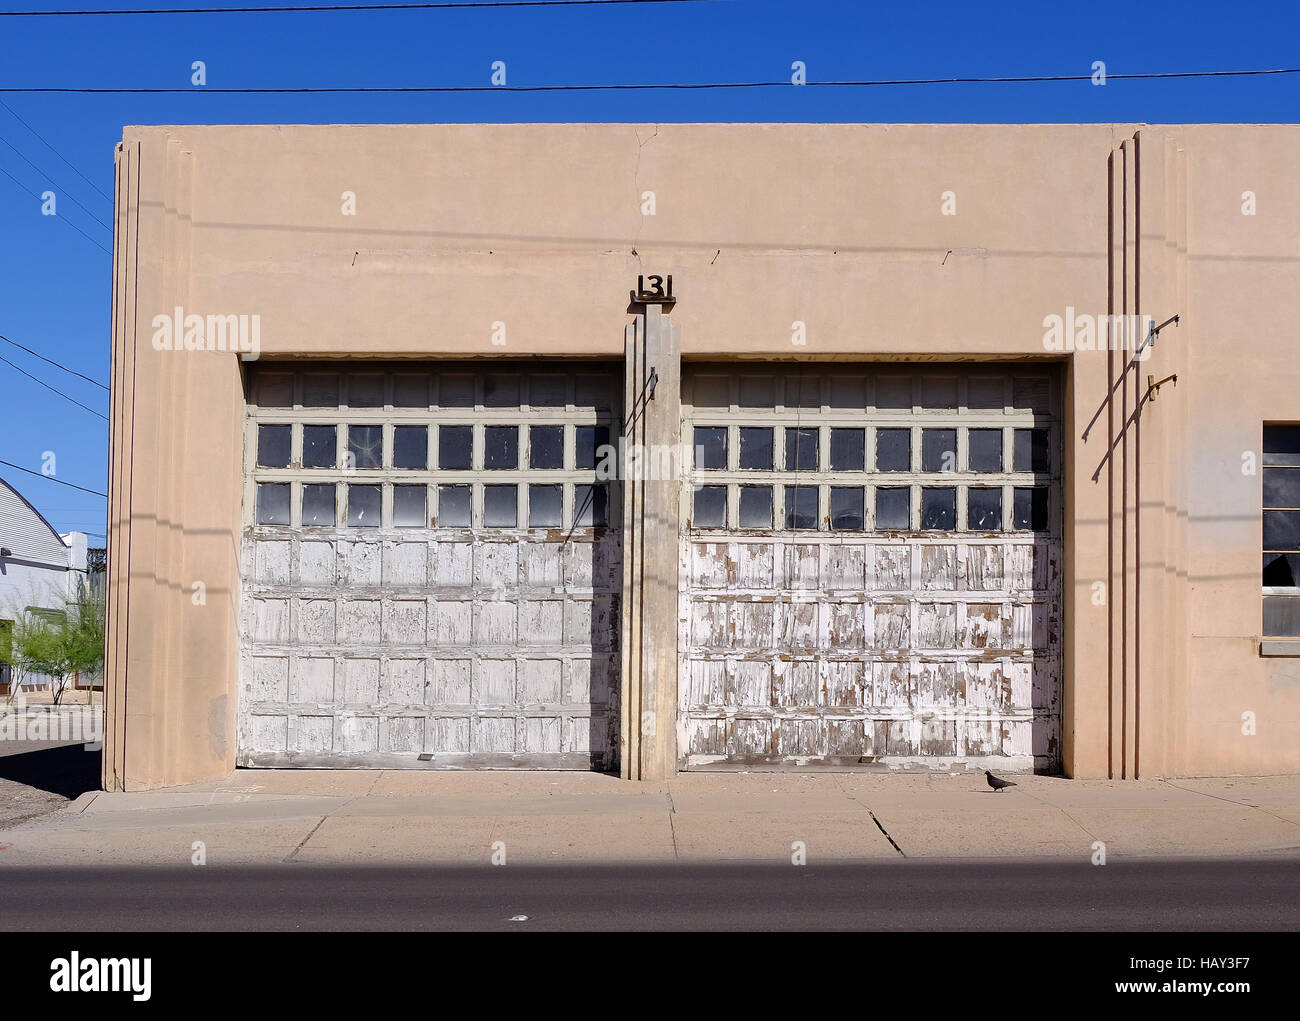 Garage door on an old Art Deco building. & Garage door on an old Art Deco building Stock Photo: 127214619 - Alamy